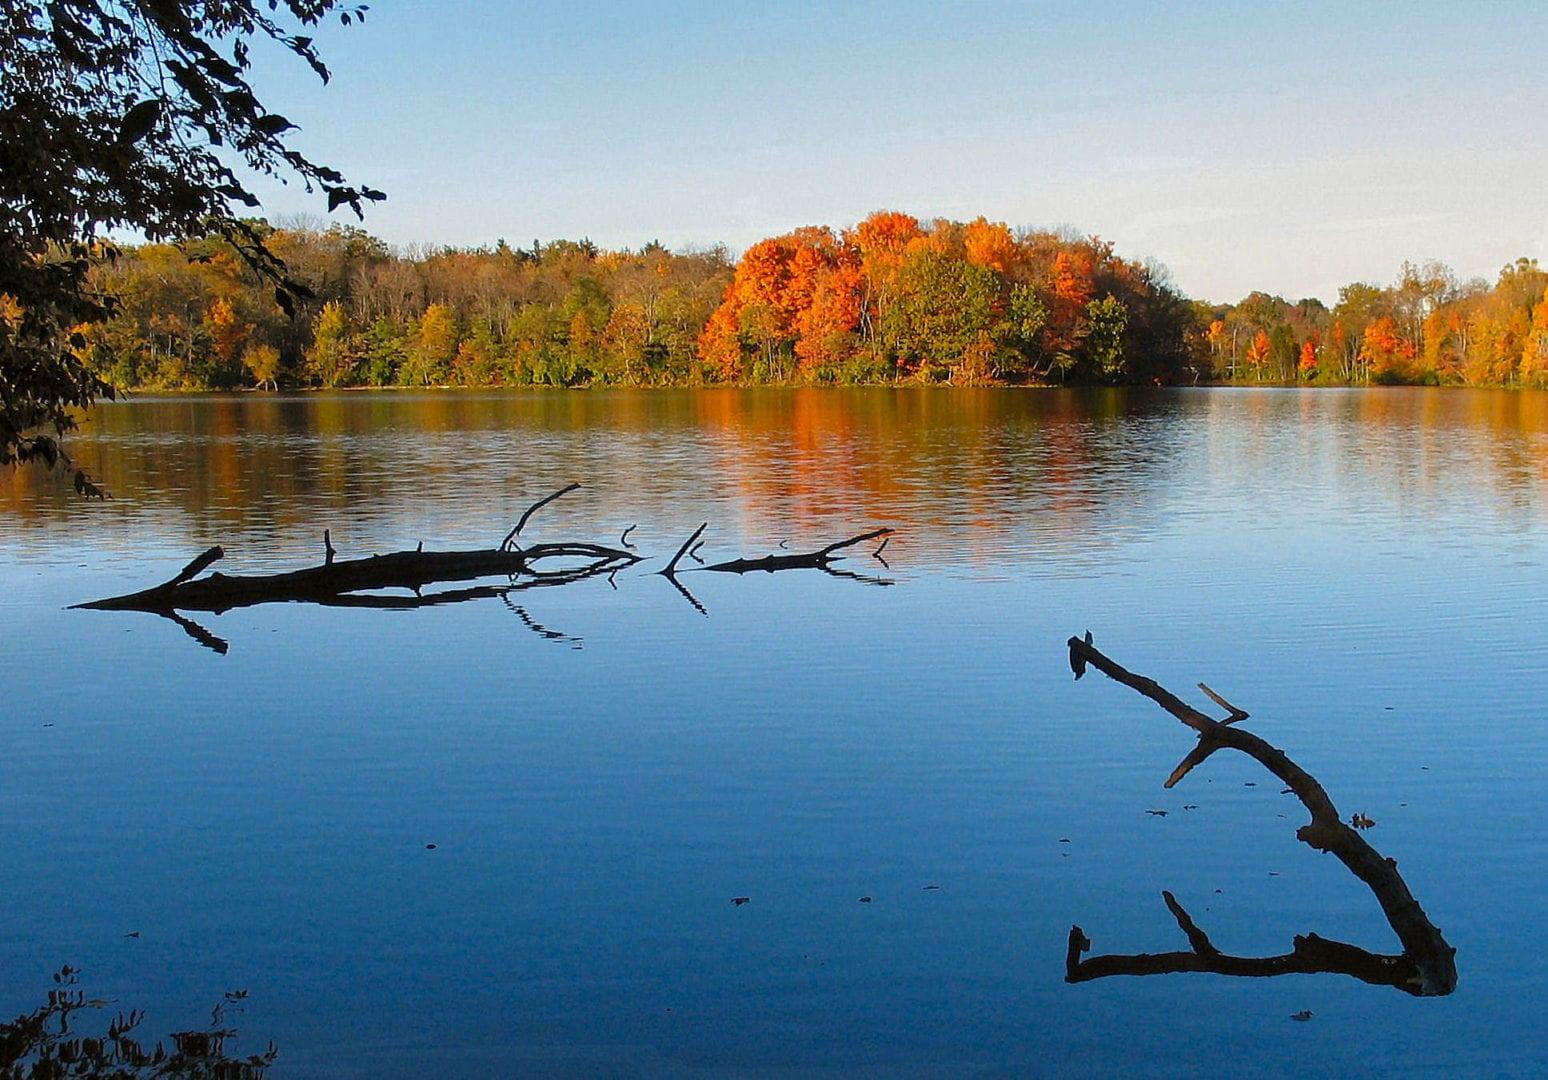 A view of Stonelick lake